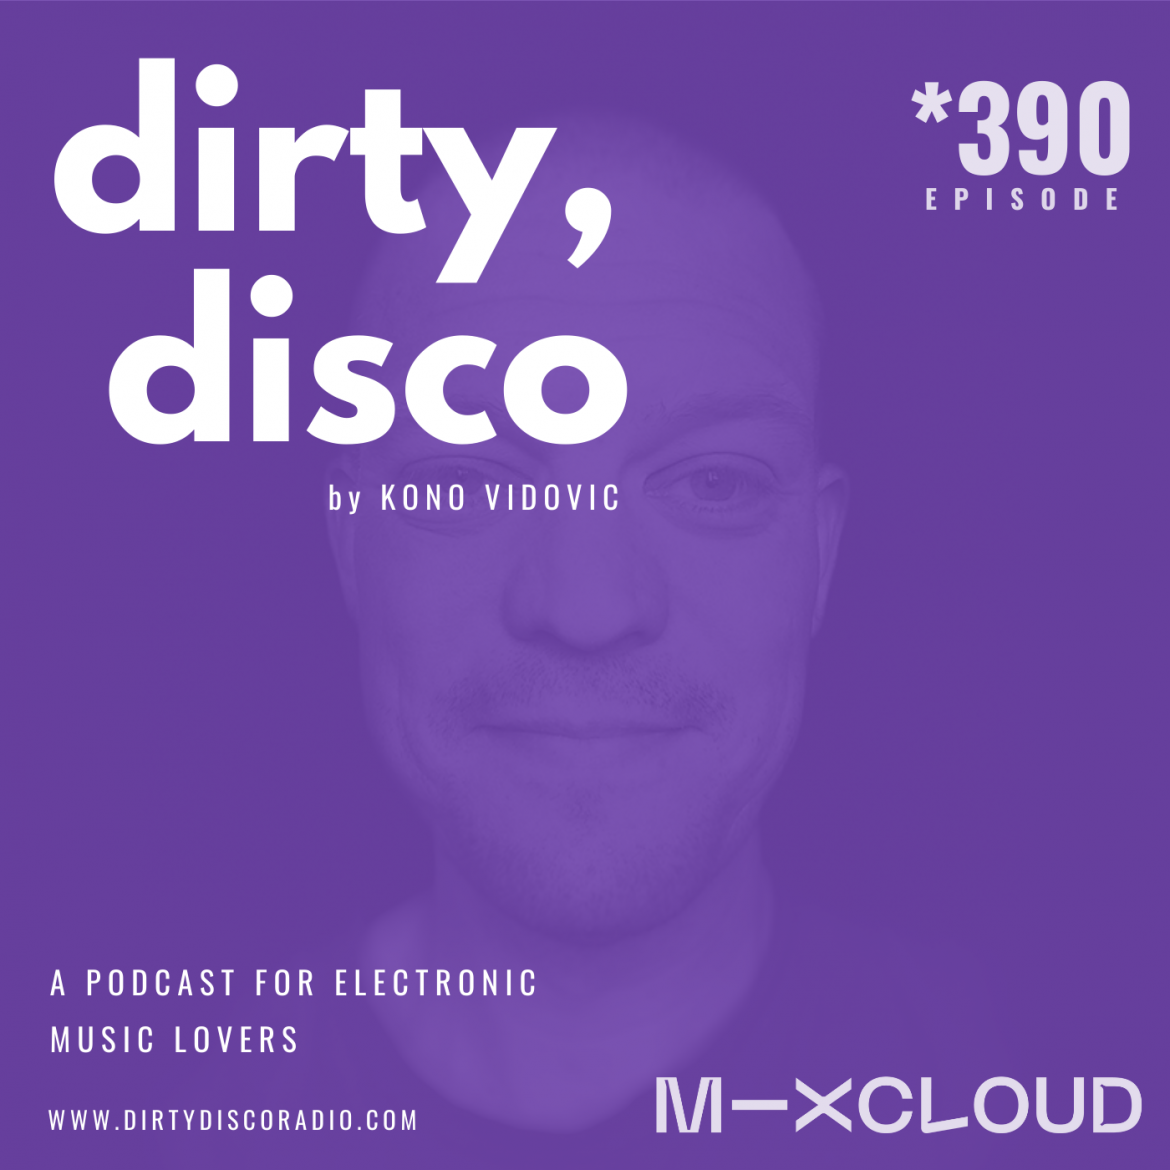 Electronic Music Podcast - Dirty Disco 390